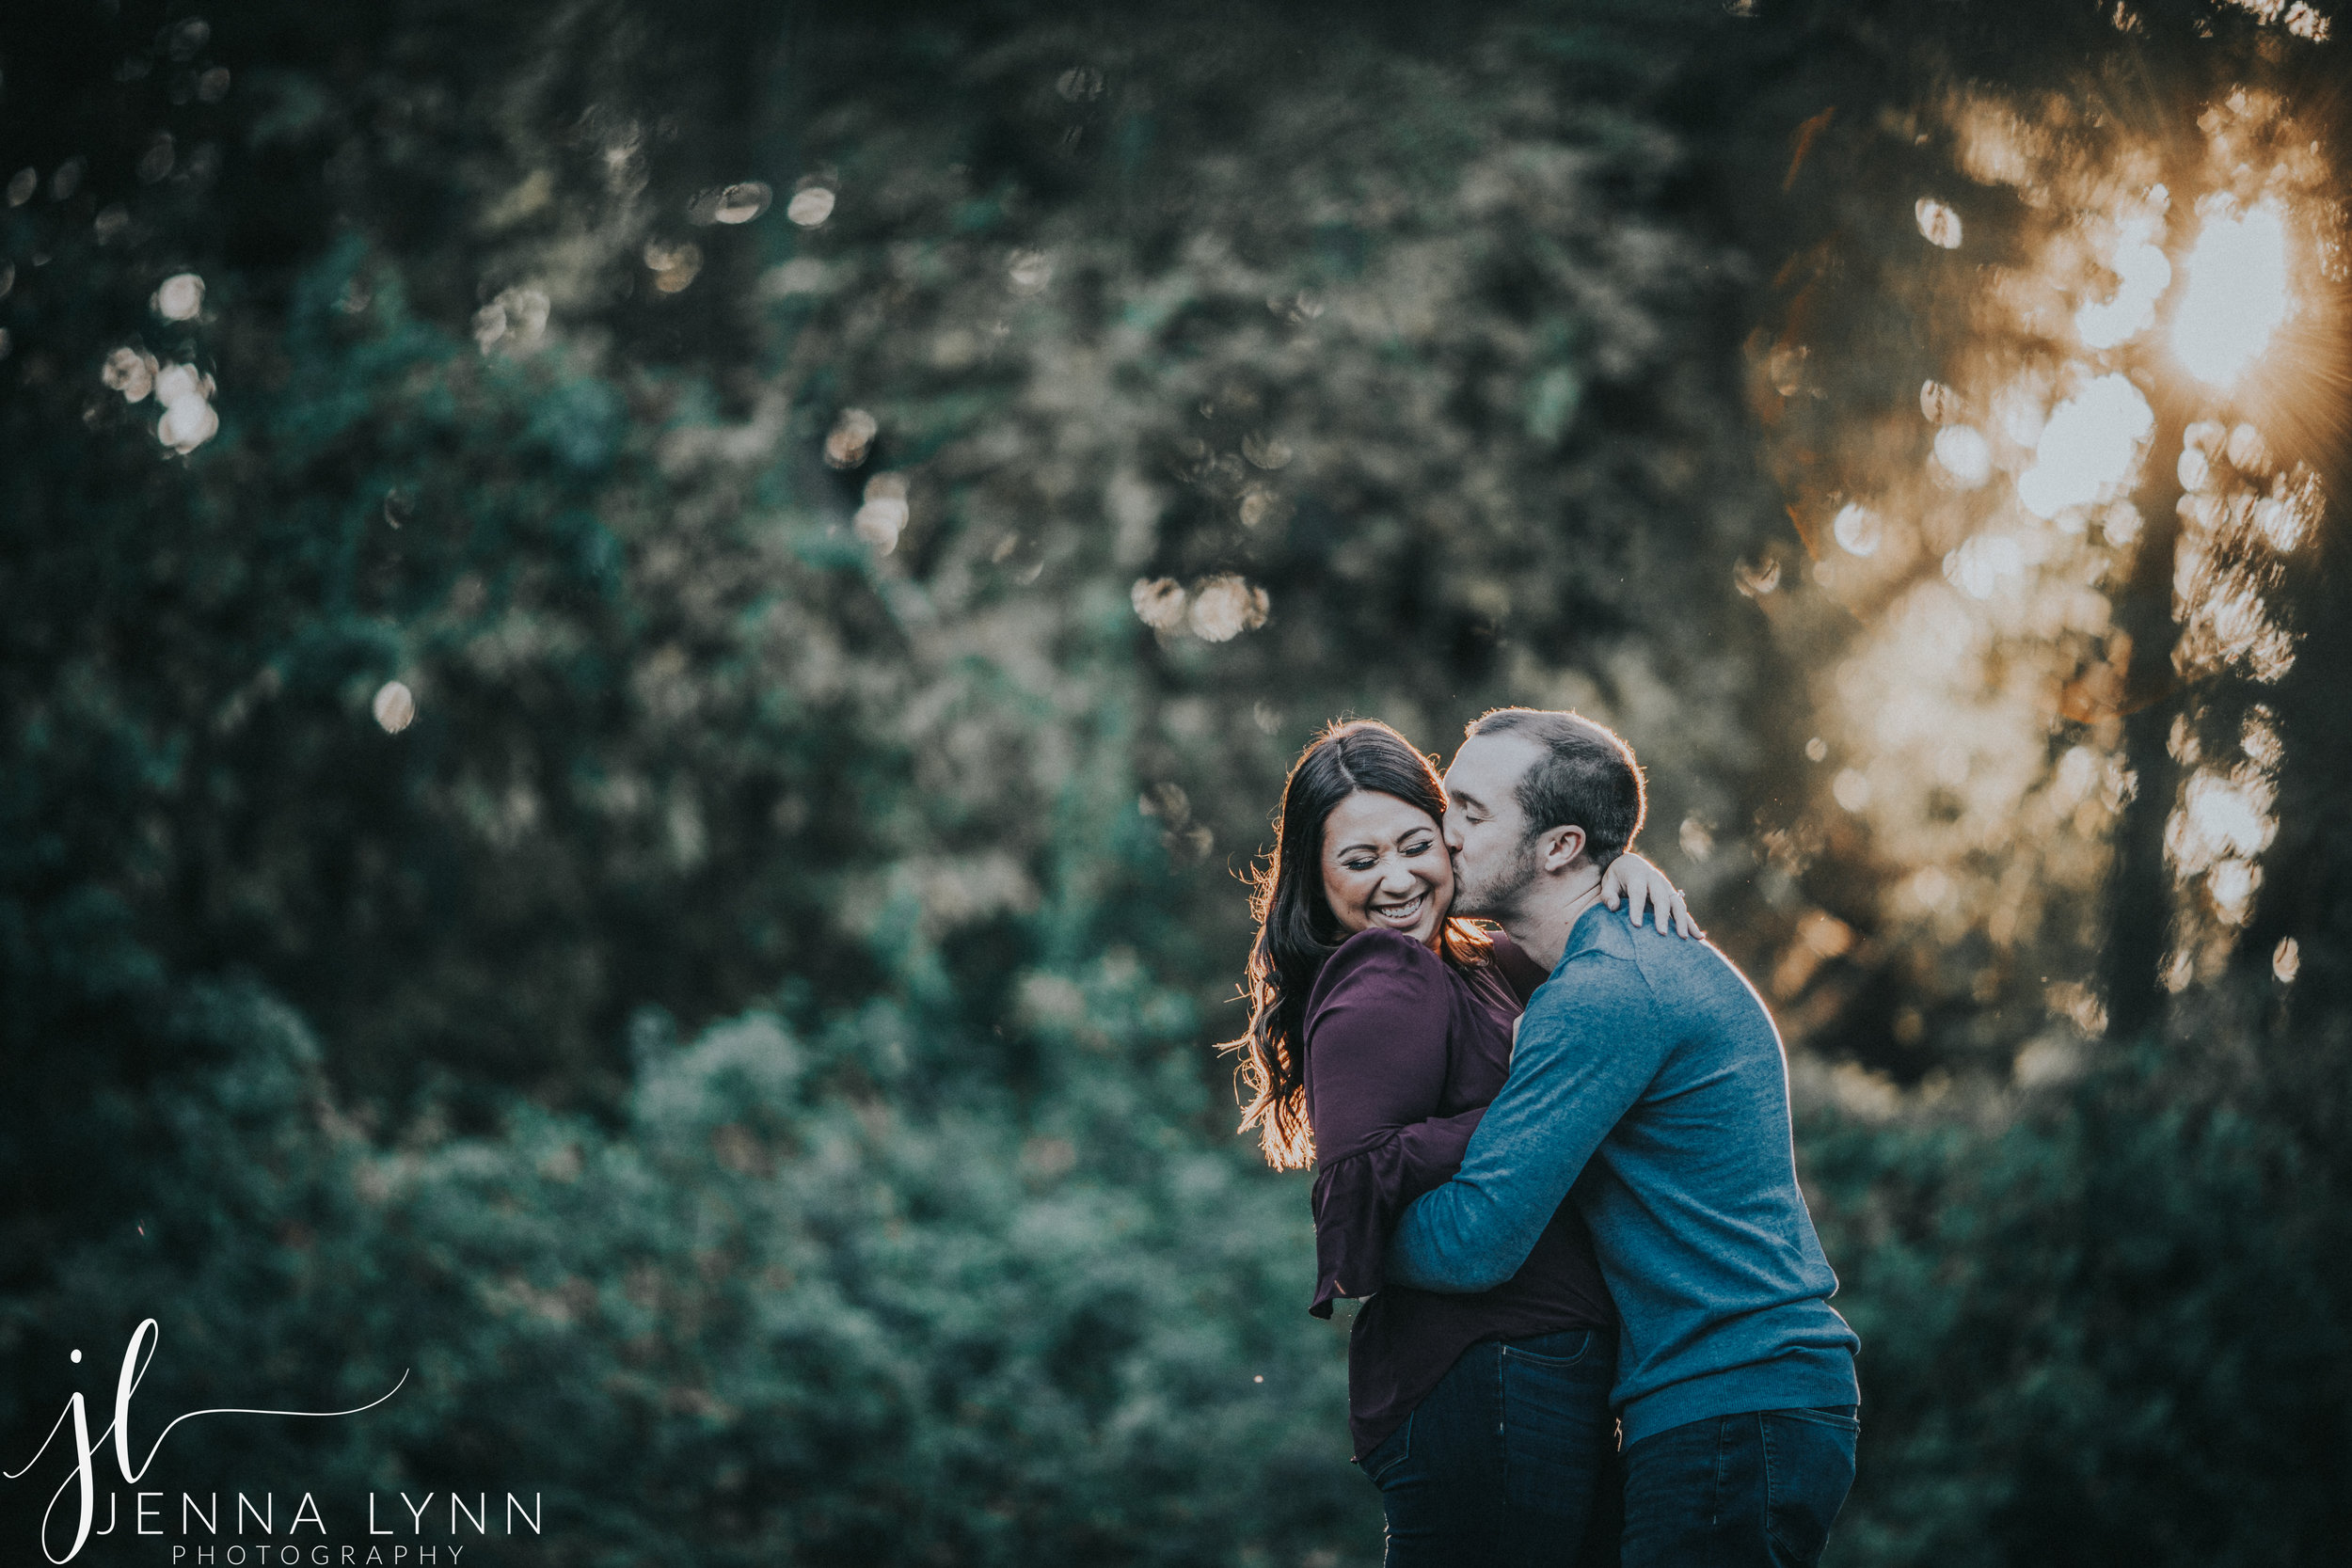 New-Jersey-Wedding-Photography-Engagement-Photos-30.jpg